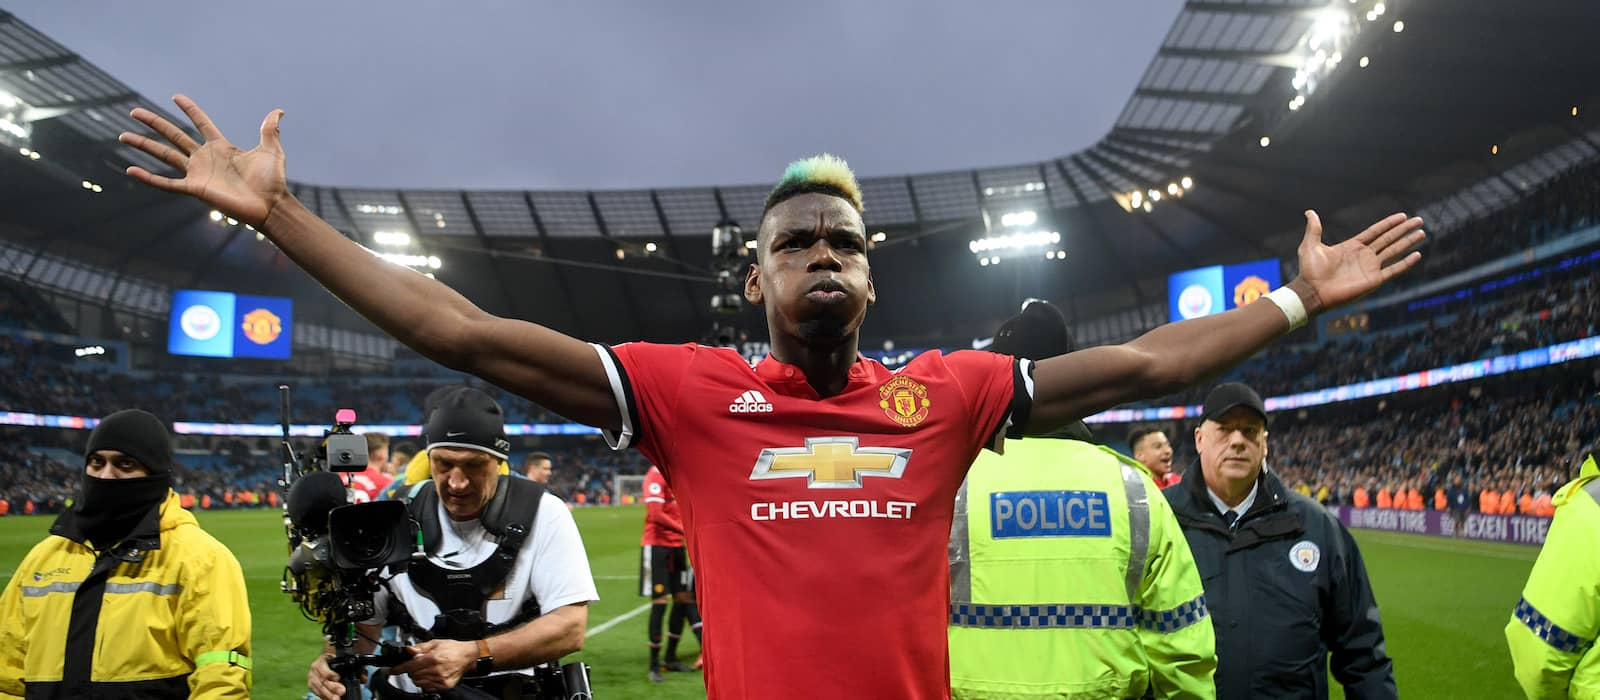 Manchester United reject offer of £45m plus Yerry Mina and Andre Gomes from Barcelona for Paul Pogba – report